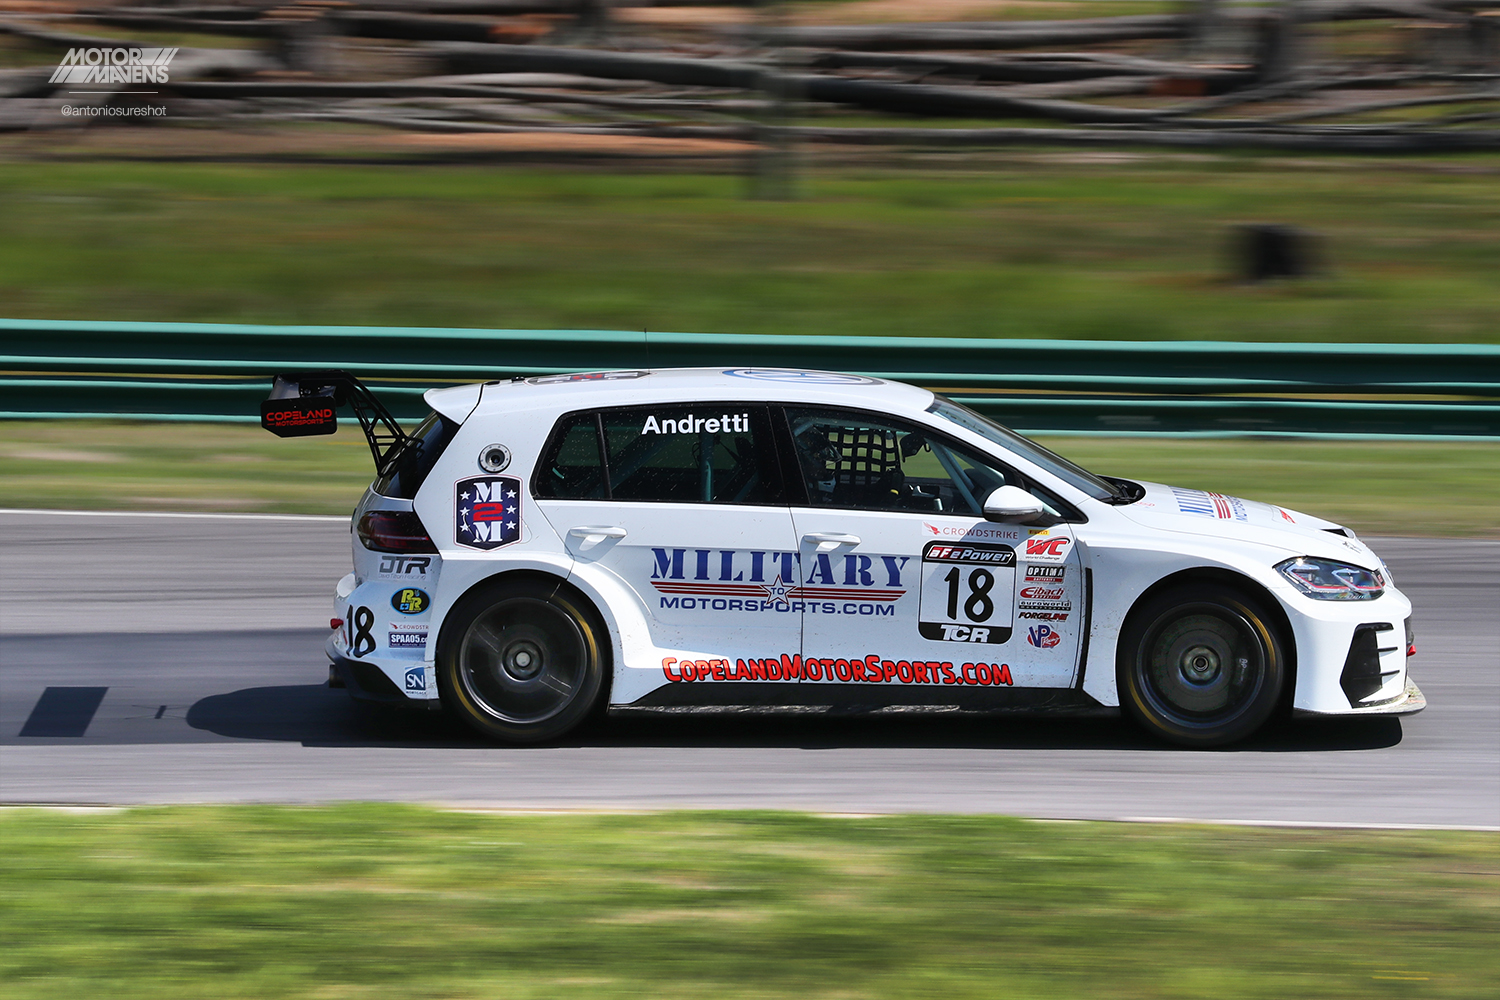 Pirelli World Challenge Virginia International Raceway, VIR, PWC, TCR, Jarett Andretti, Volkswagen, Golf, GTI, Volkswagen Golf GTI, TCR